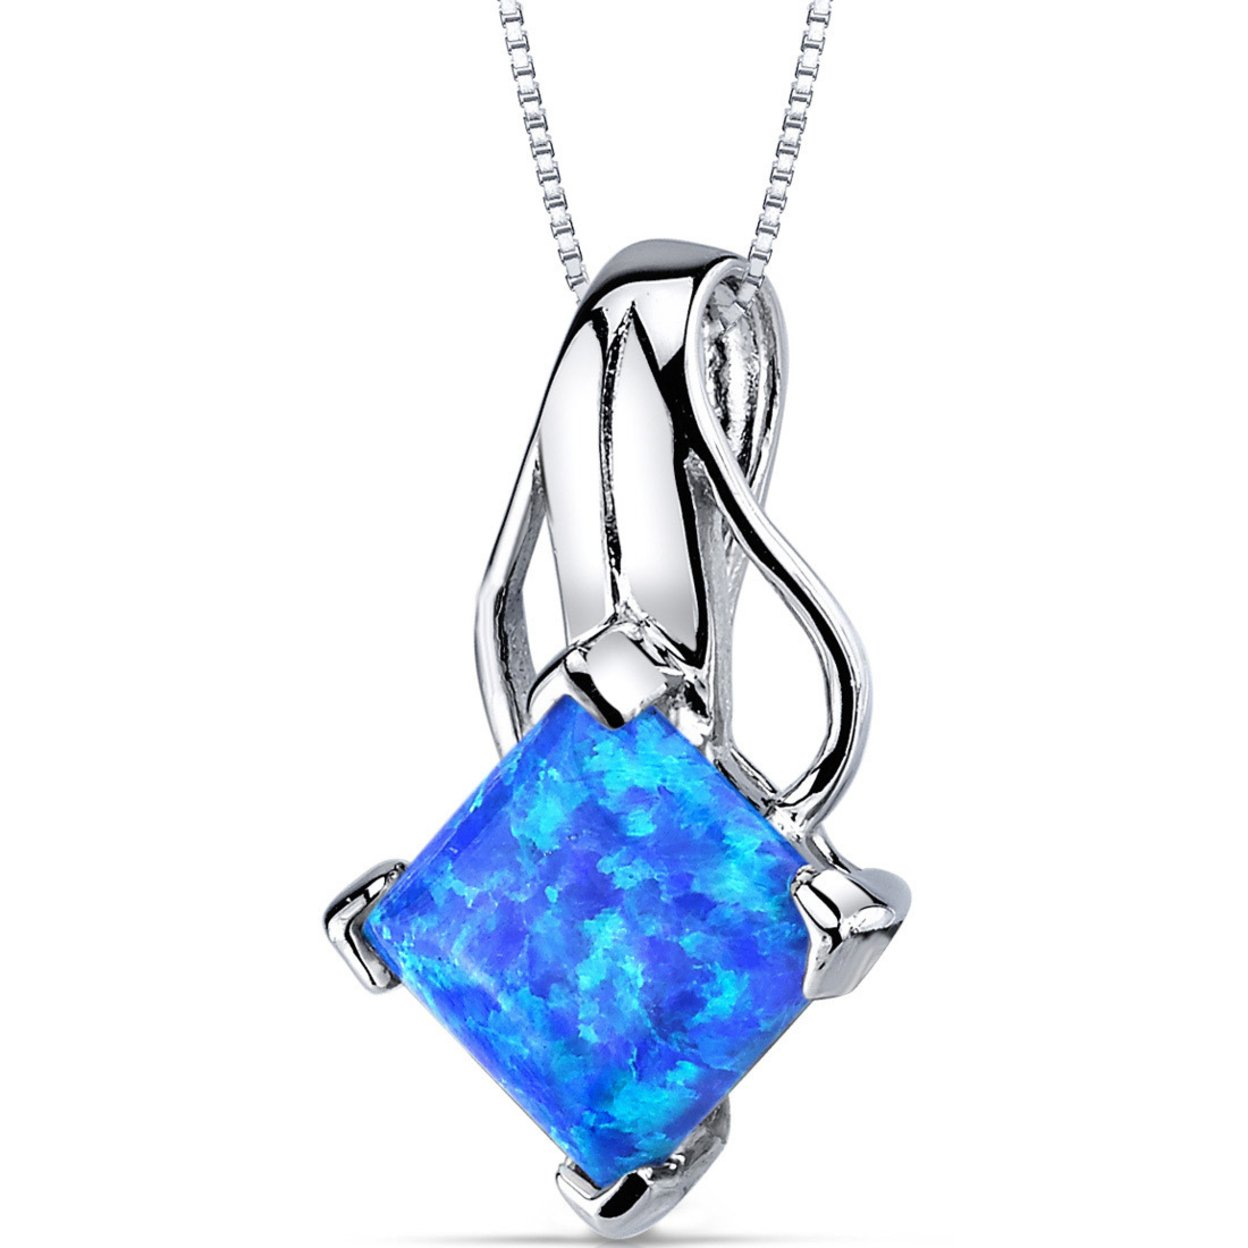 Oravo 2.00 Carat T.g.w. Princess Cut Created Blue-green Opal Rhodium Over Sterling Silver Pendant, 18""